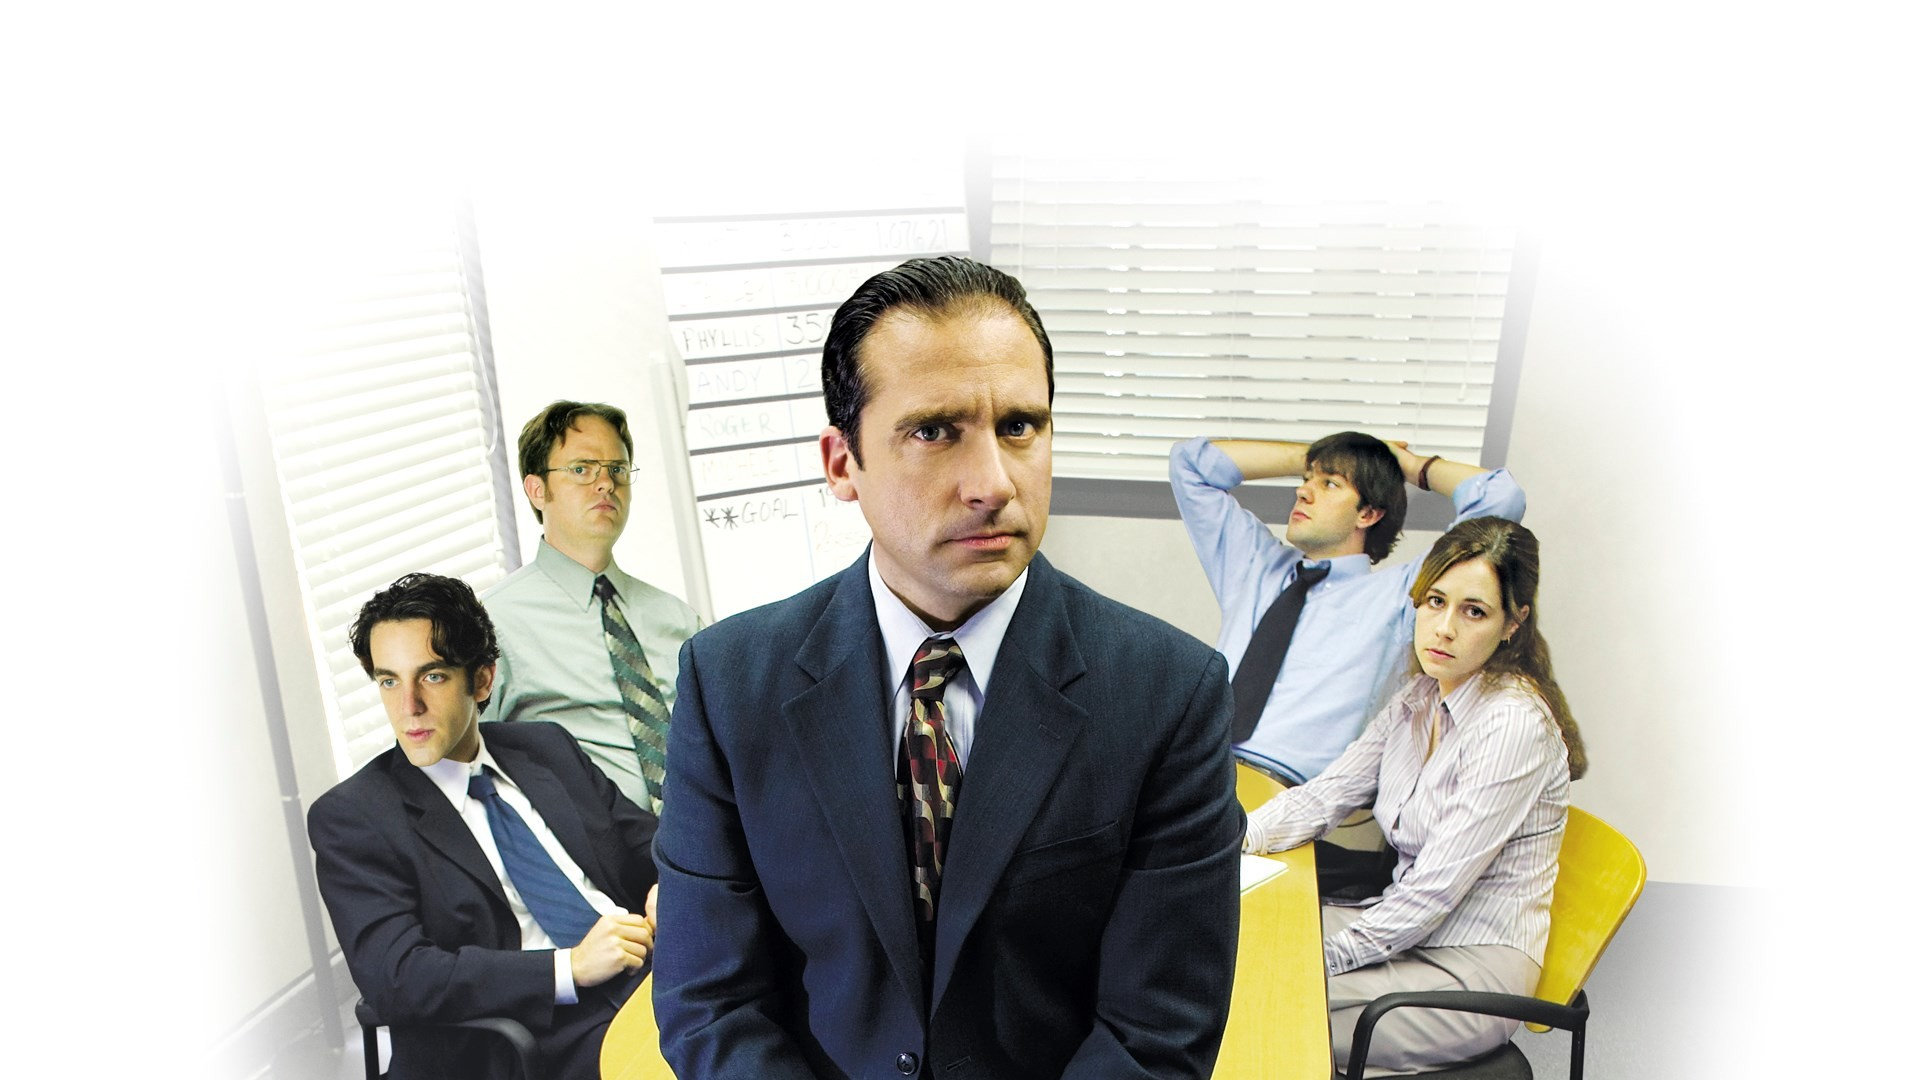 HD Widescreen the office us